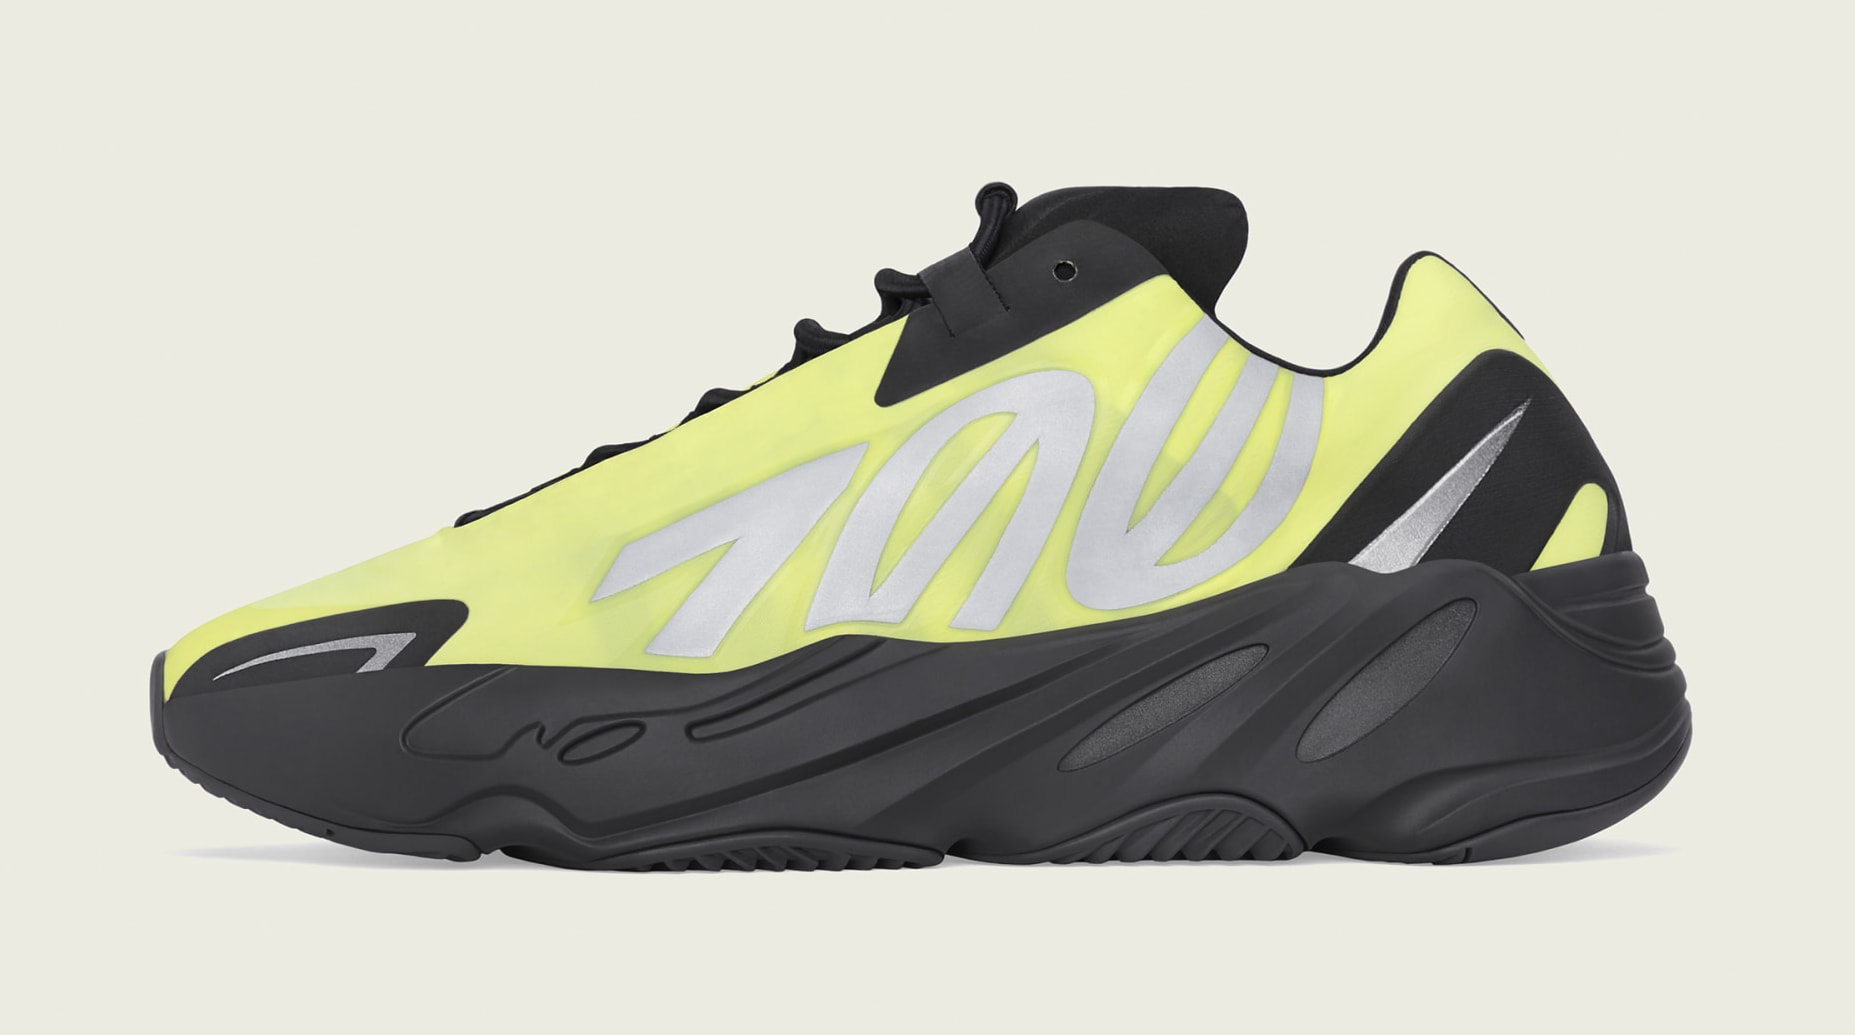 Adidas Yeezy Boost 700 MNVN 'Phosphor' FY3727 Lateral